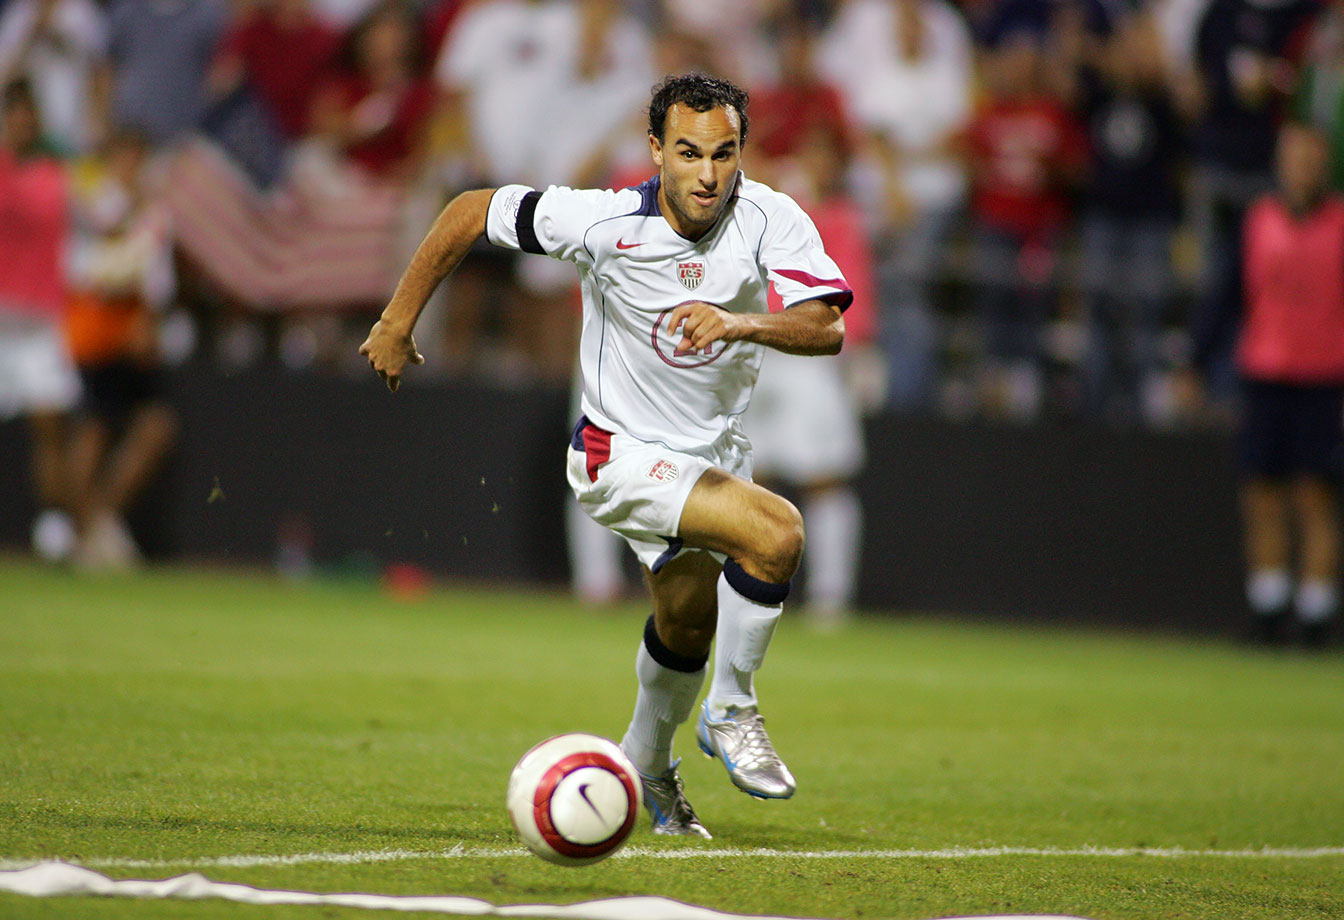 Landon Donovan in action against Mexico during a 2006 World Cup qualifier.